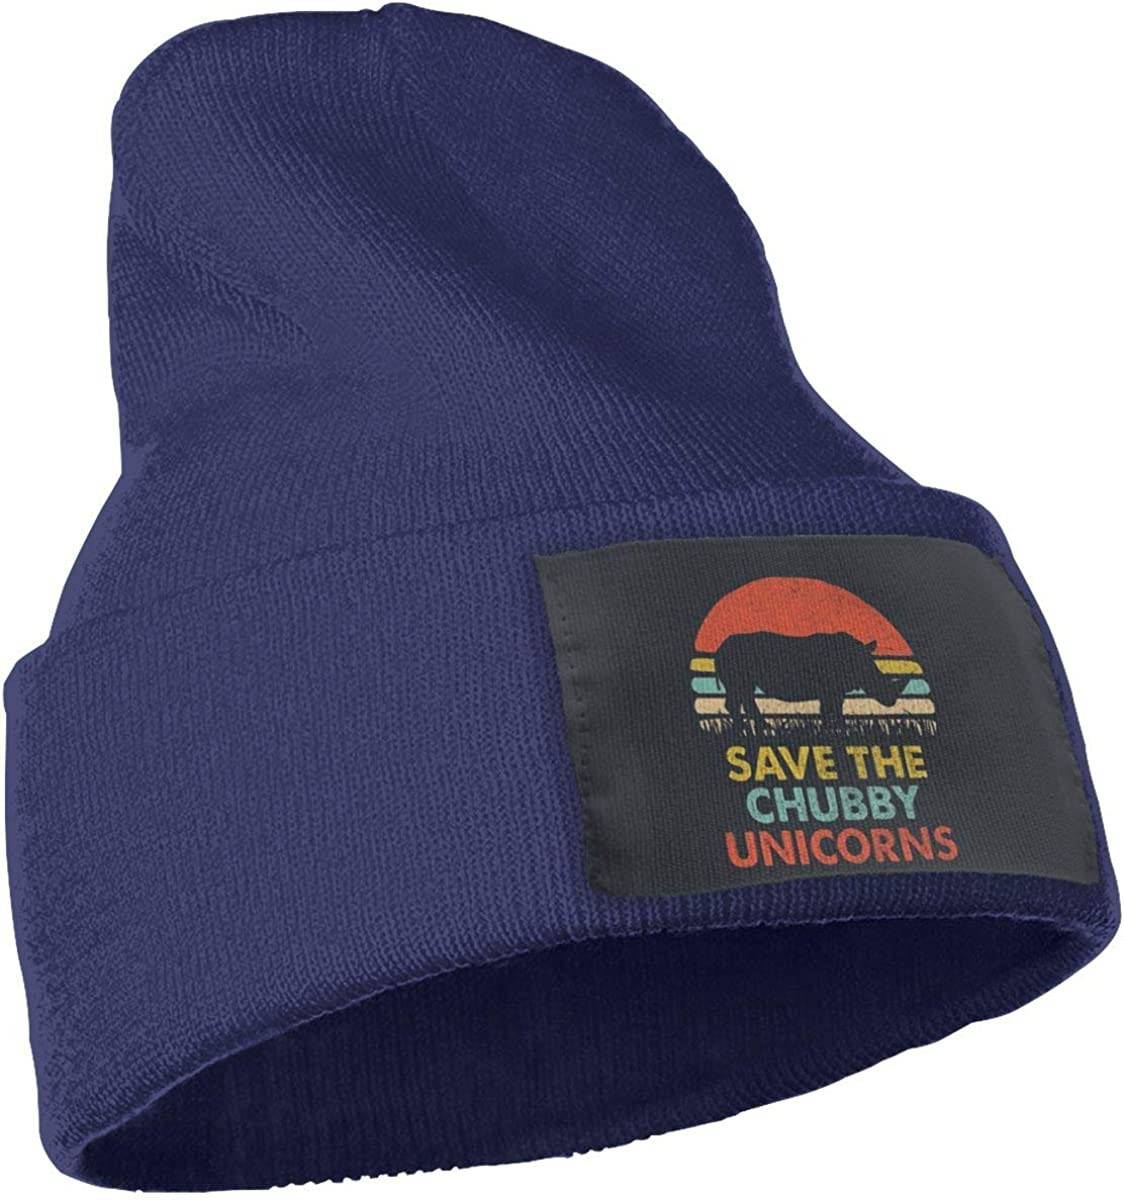 Save The Chubby Unicorn 7 Beanies Hats Wool Knit Cap for Woman Man